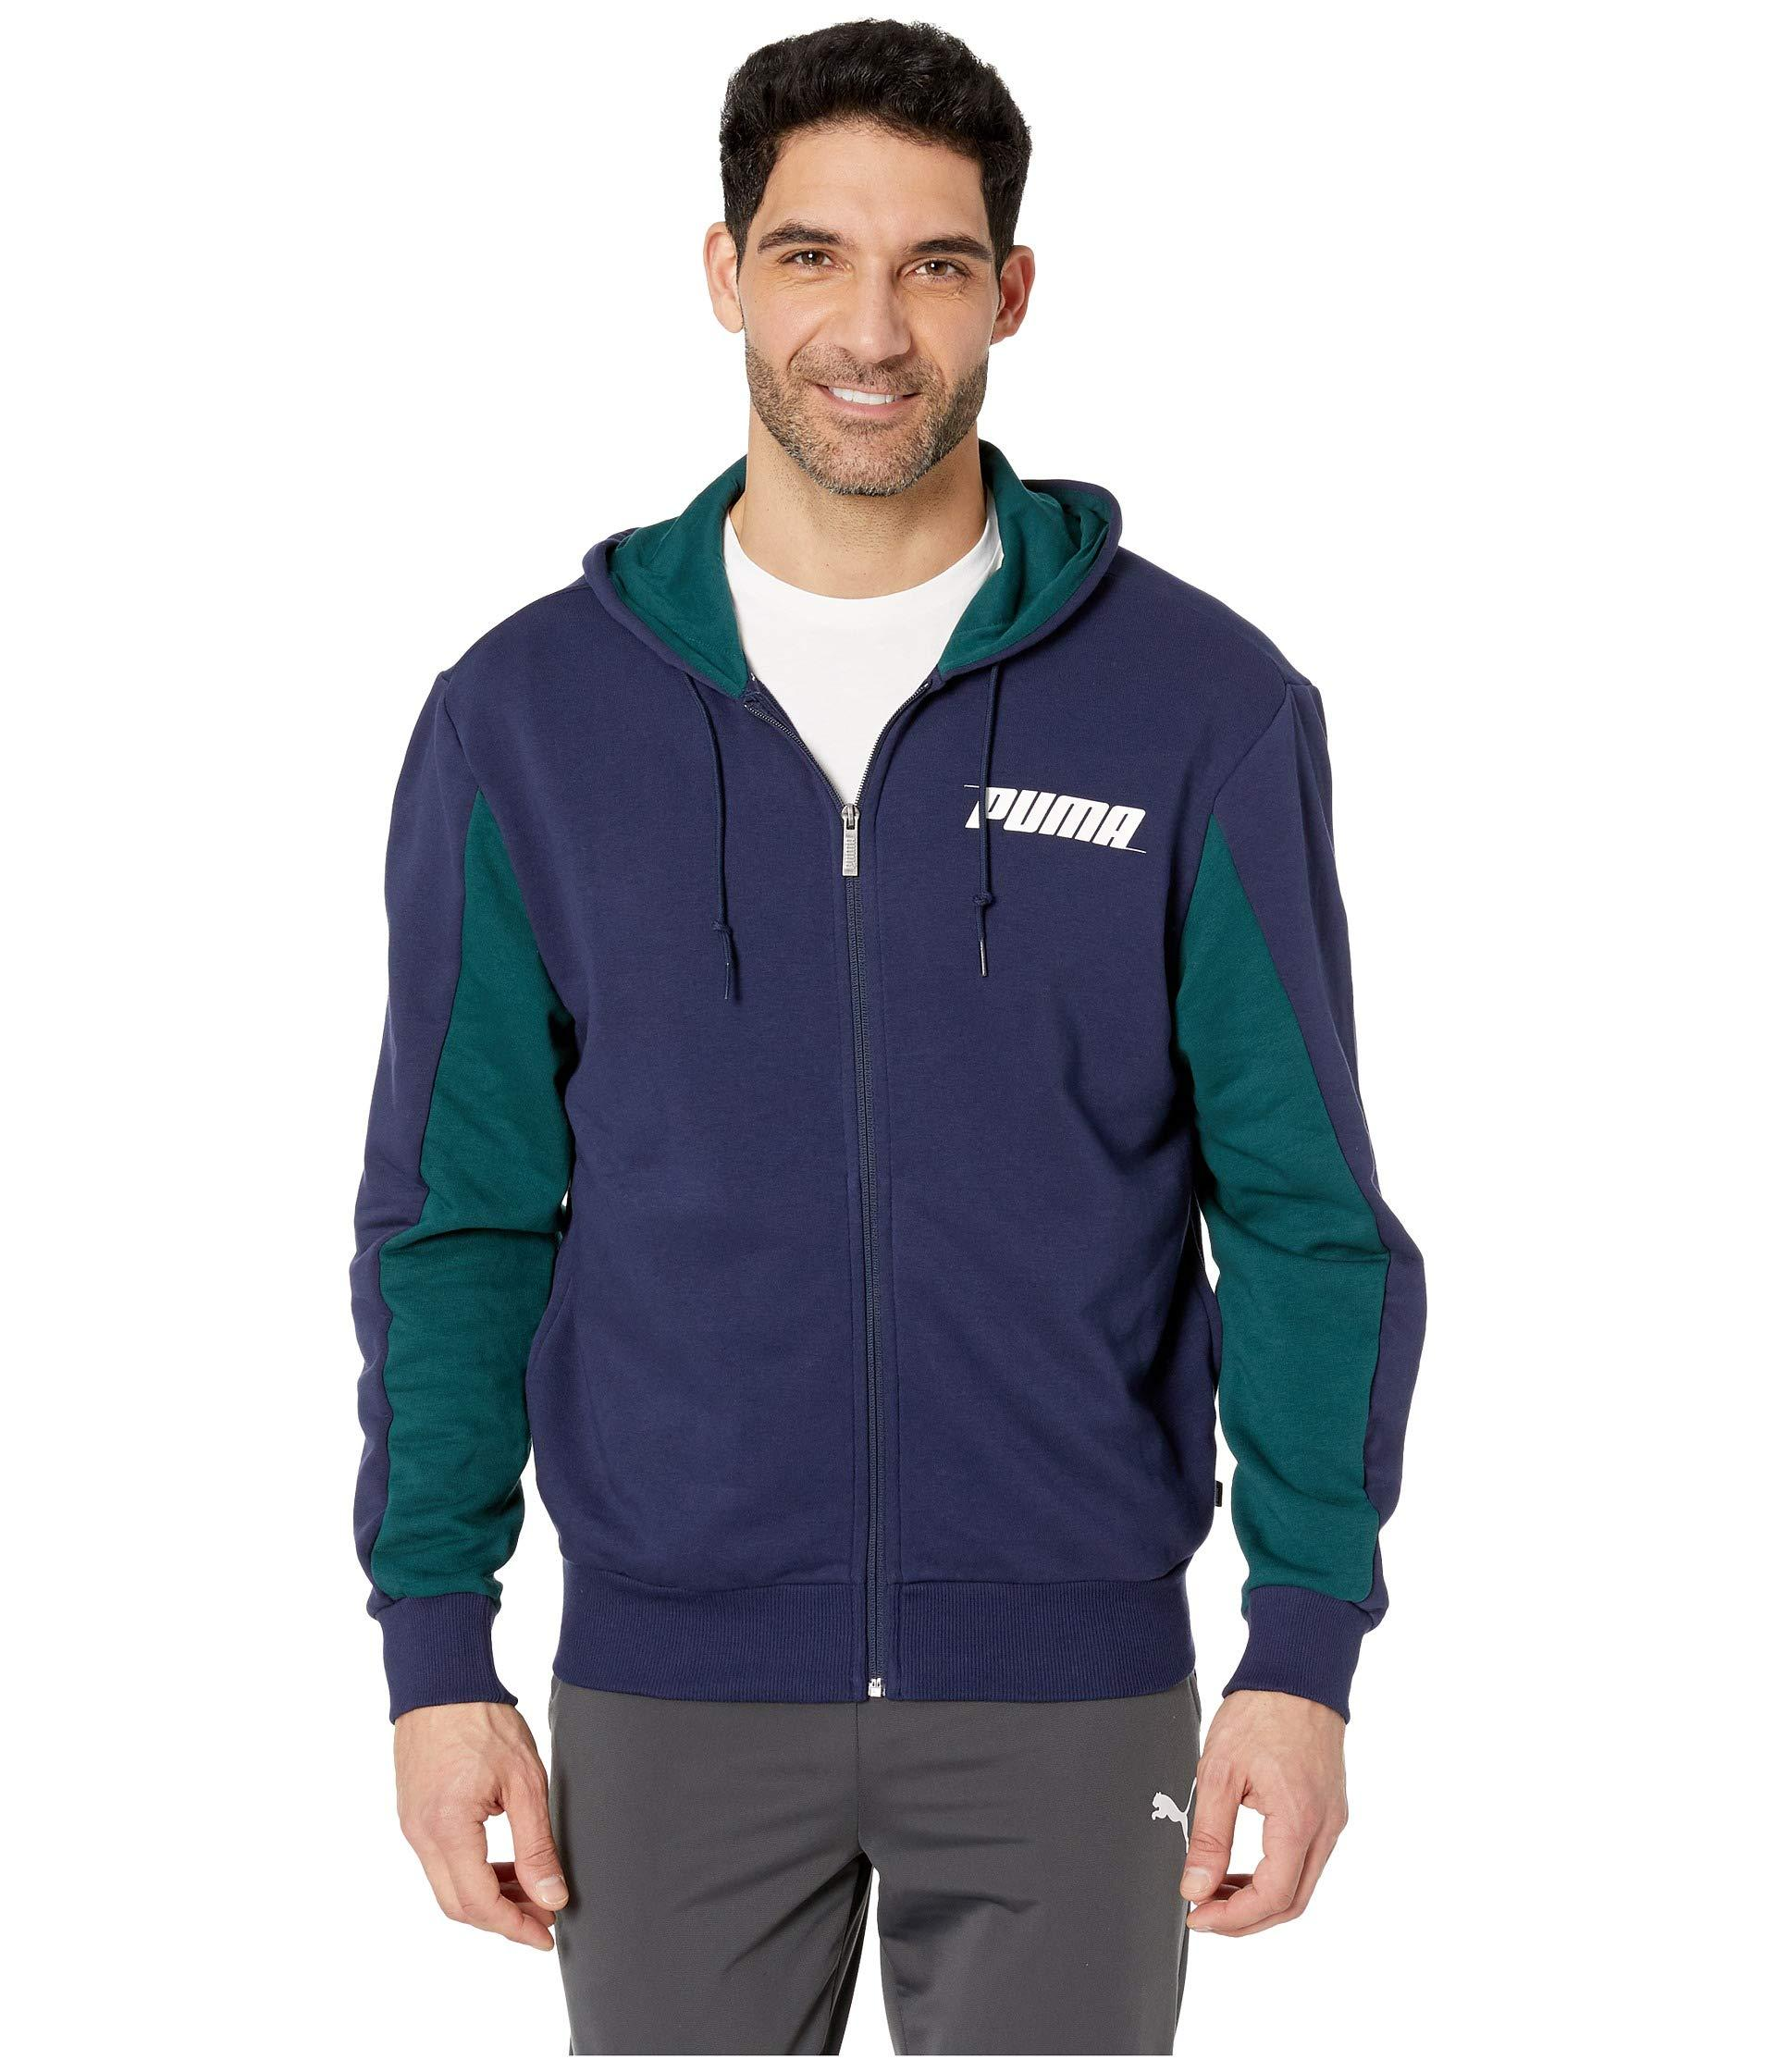 68f08bcf9753 Lyst - PUMA Rebel Hooded Jacket Tr in Blue for Men - Save 23%